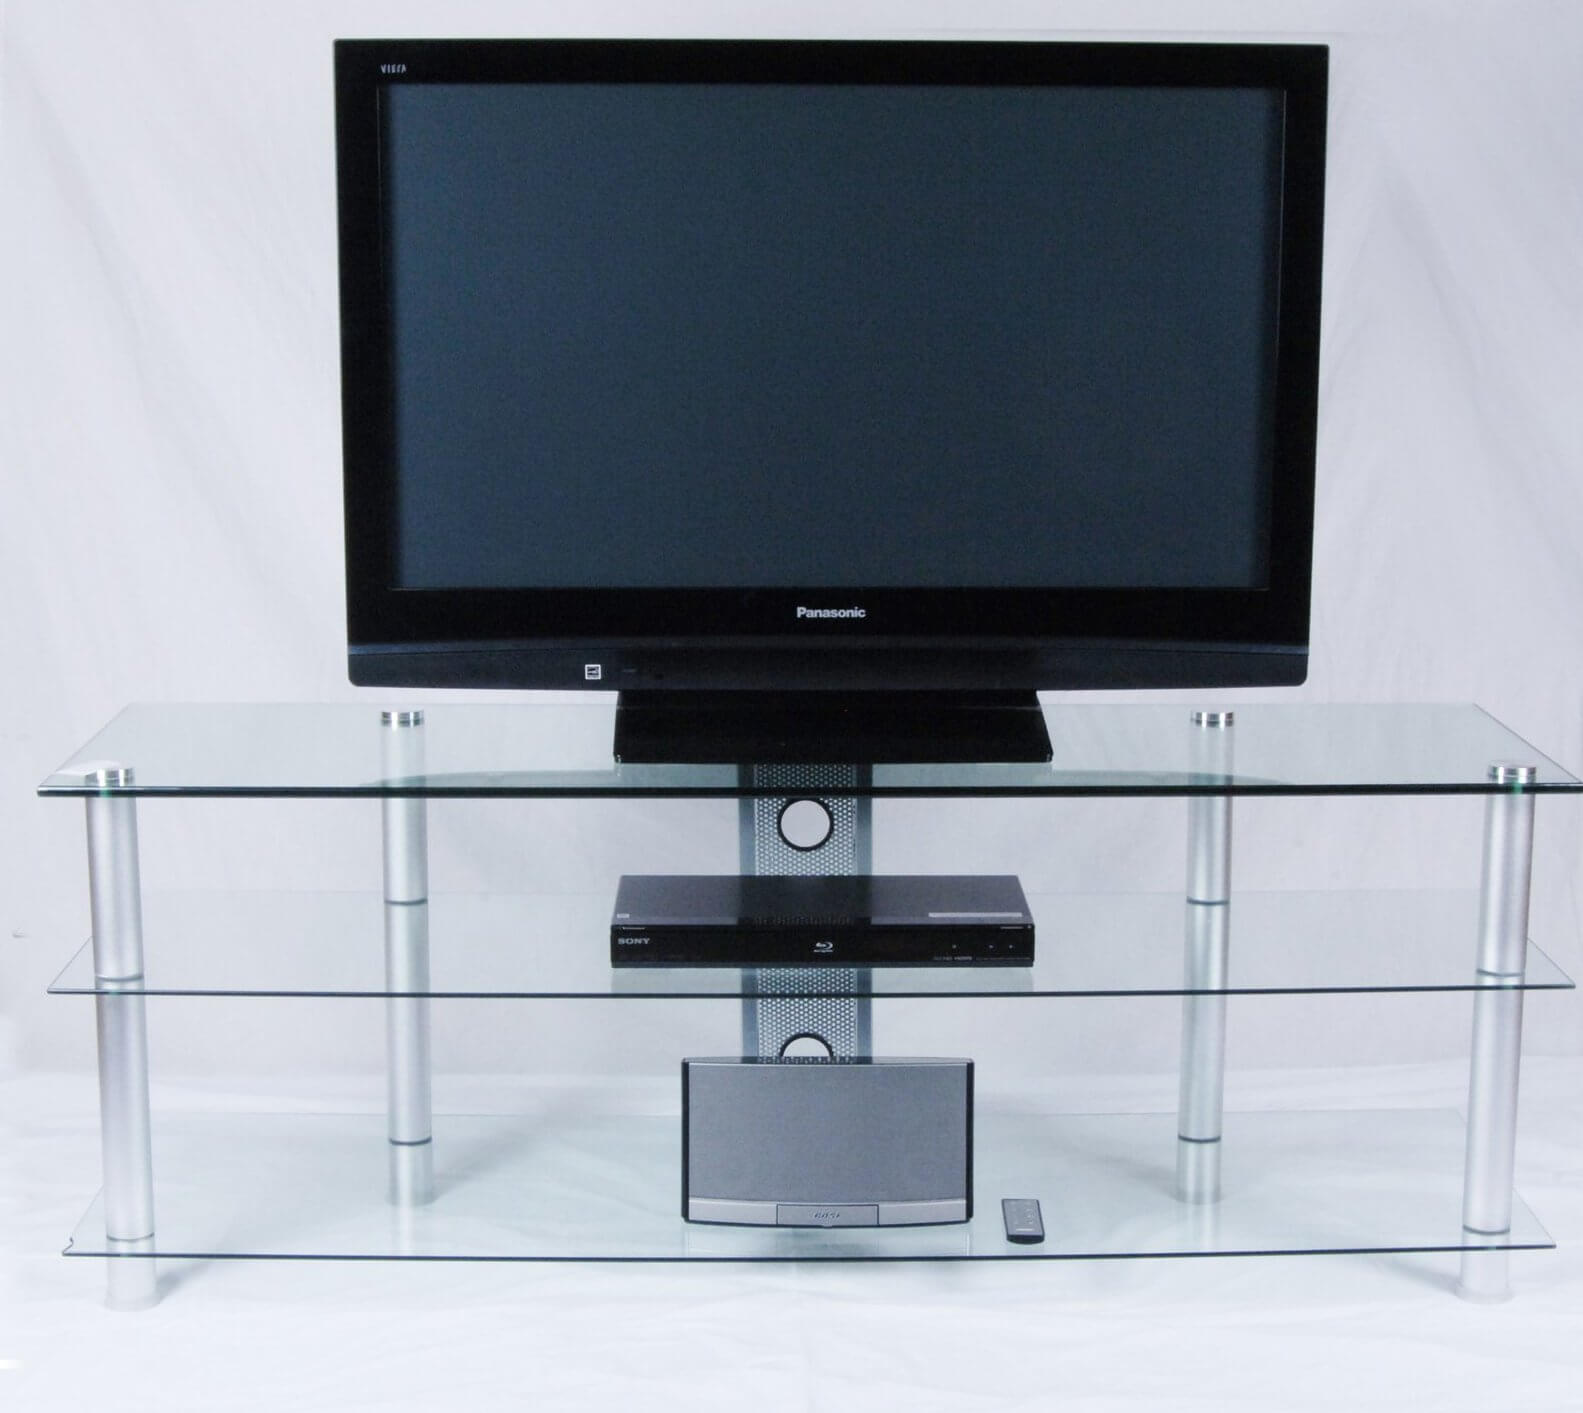 Glass models imbue the entertainment space with a boldly progressive appearance, opening the visual space and revealing the electronics in discreet beauty. Usually fitted together with metal support pieces, glass TV stands are perfect for those who value a clutter-free space.